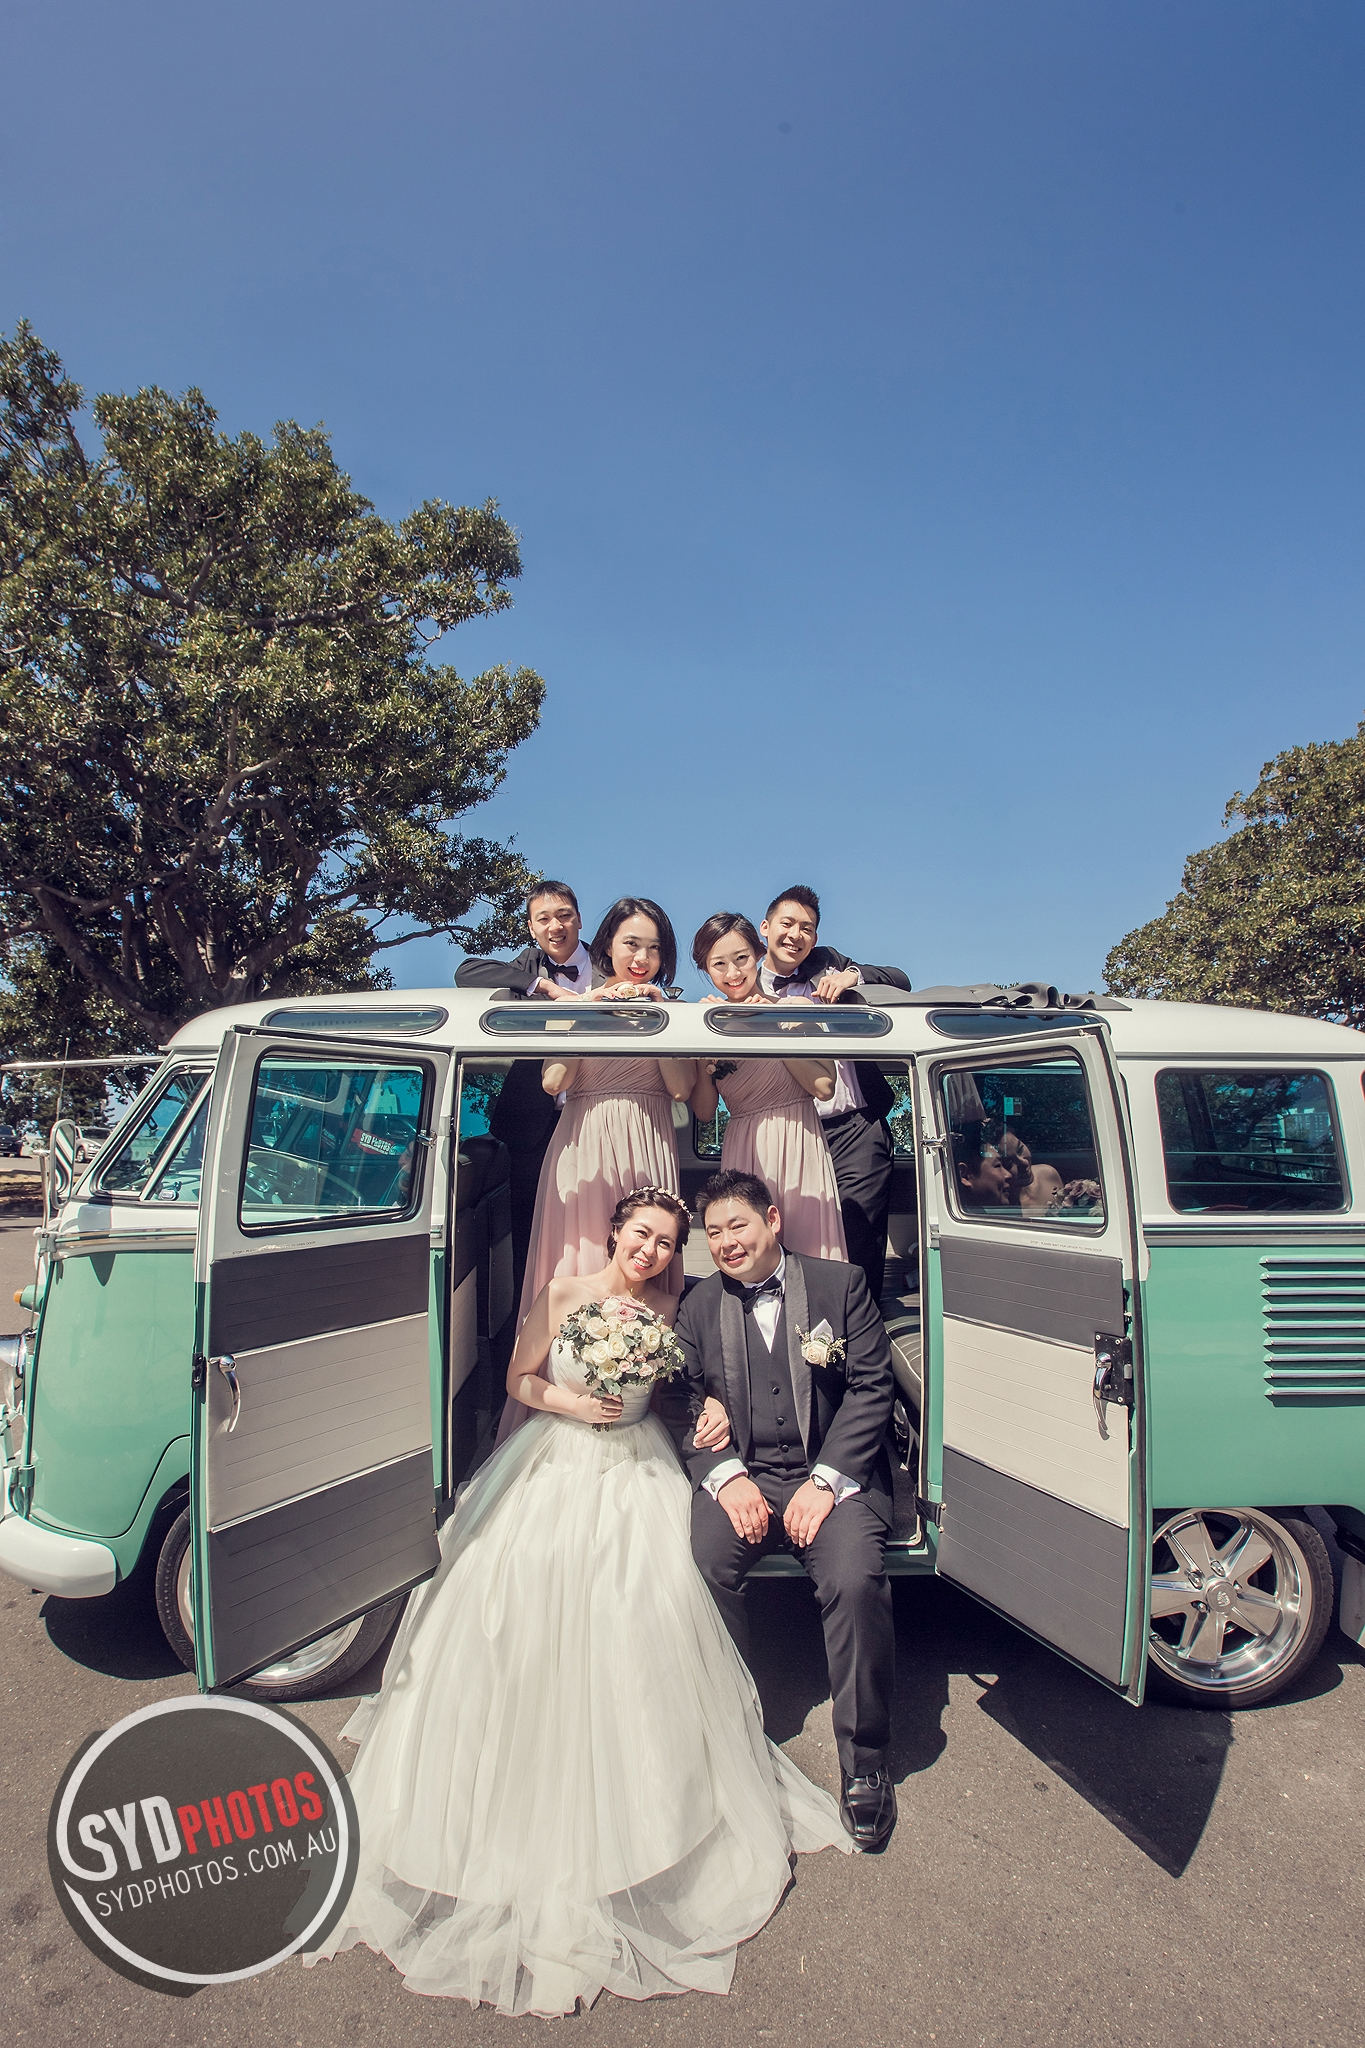 ID87727-20171013-749.jpg, By Photographer Sydphotos.wedding, Created on 29 Jan 2018, SYDPHOTOS Photography all rights reserved.